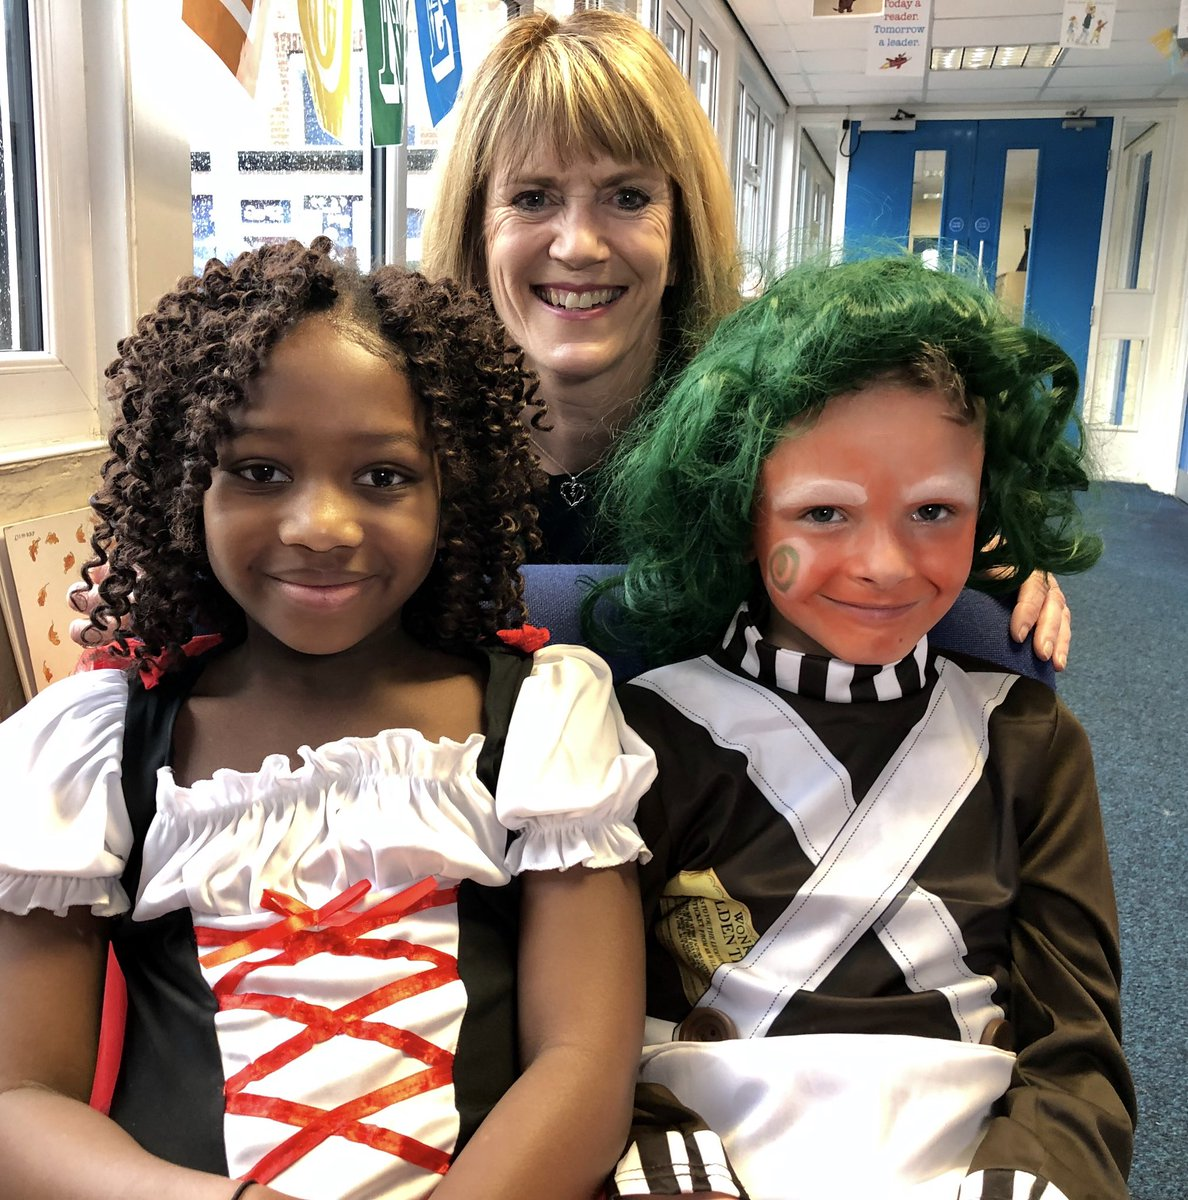 test Twitter Media - It's #WorldBookDay2019 today and @katieoscroftitv is at @HartleyBrookPri tune into @itvcalendar to watch her report #fancydress #books #learning https://t.co/VrWkuvsK6S